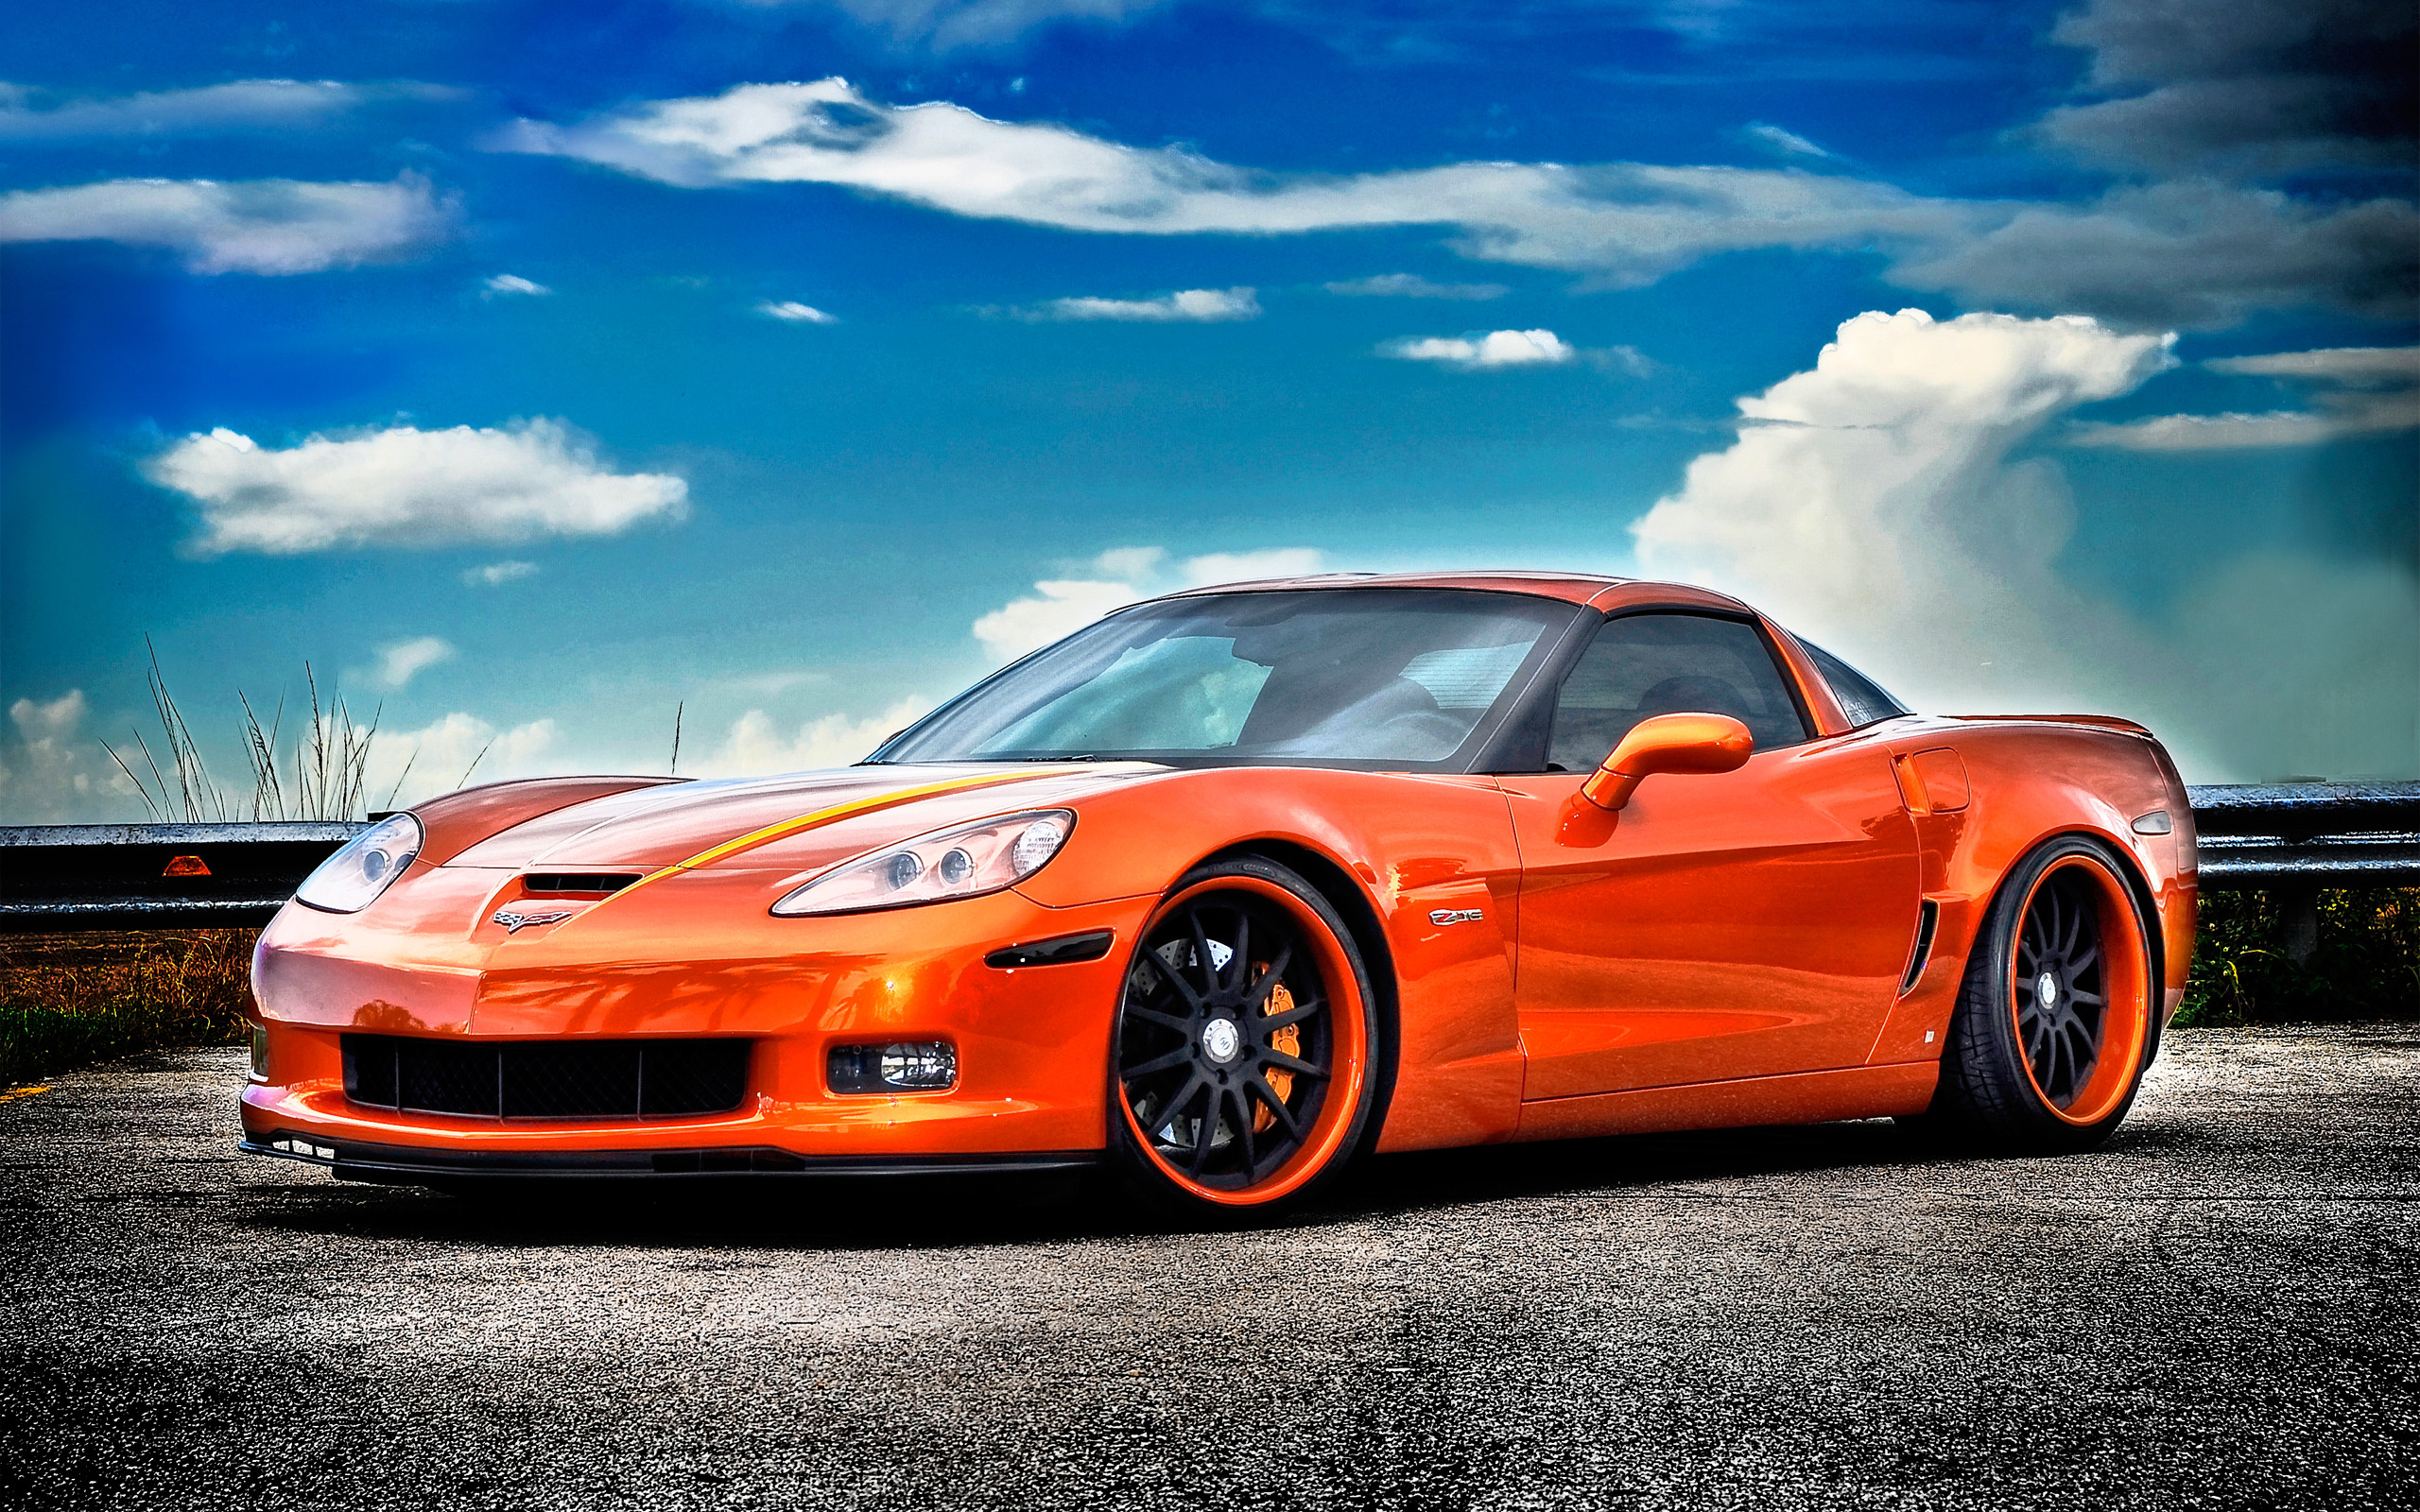 Chevrolet Corvette Z06 Wallpaper Orange HD 102 Wallpaper